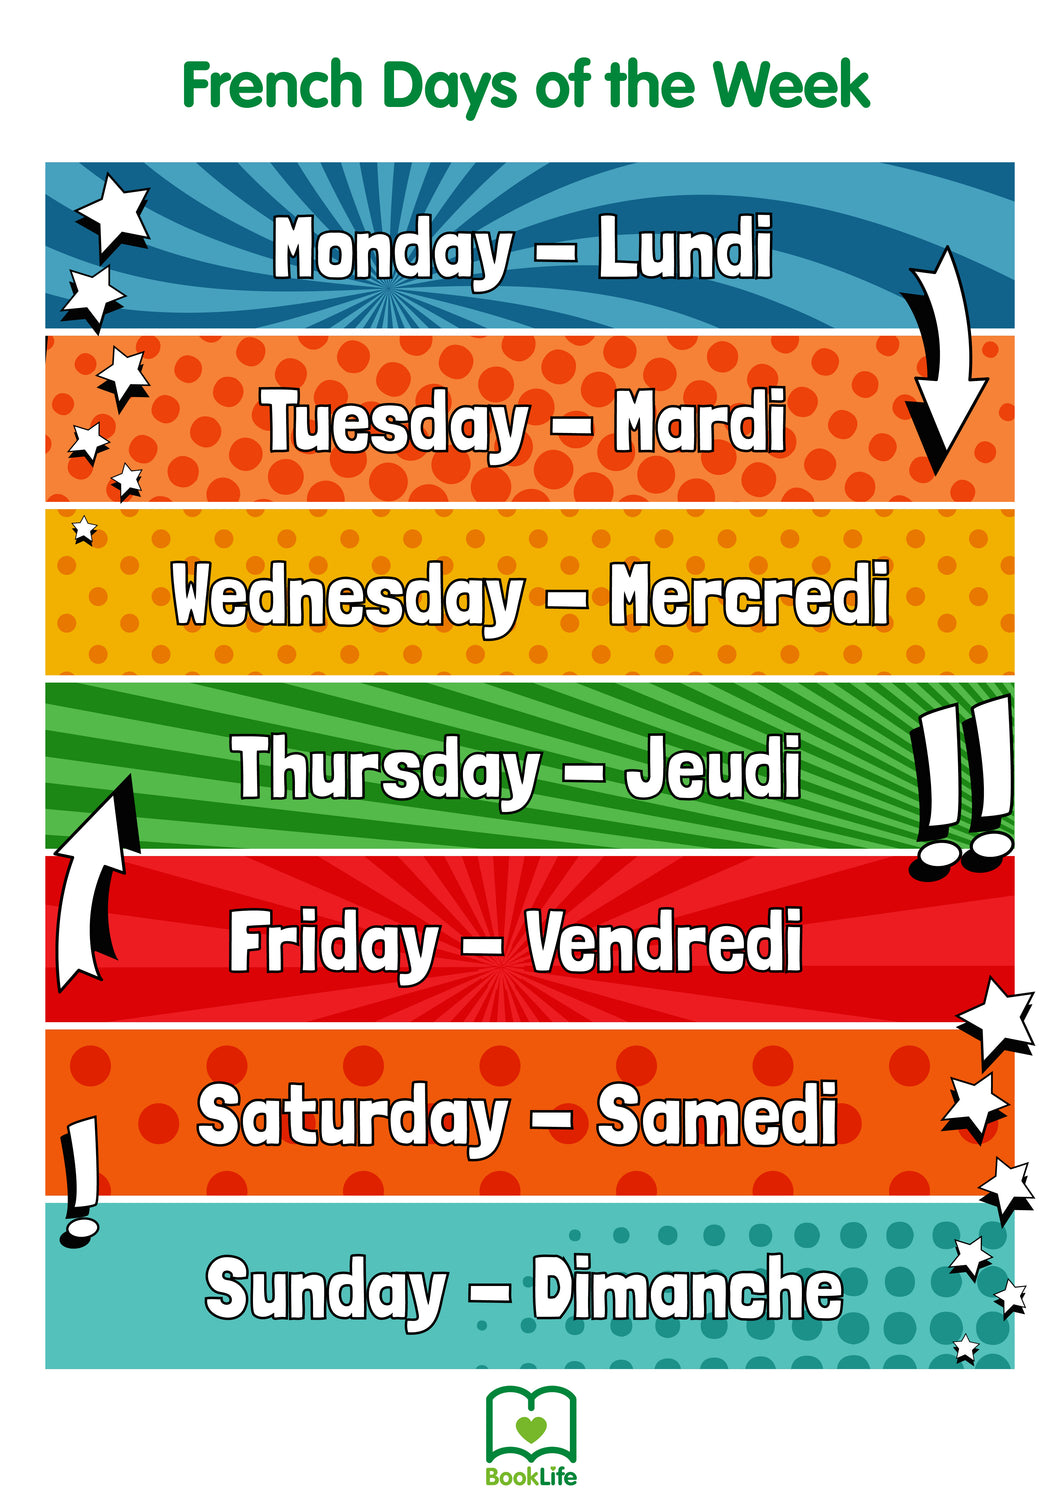 Free French Days of the Week Poster by BookLife